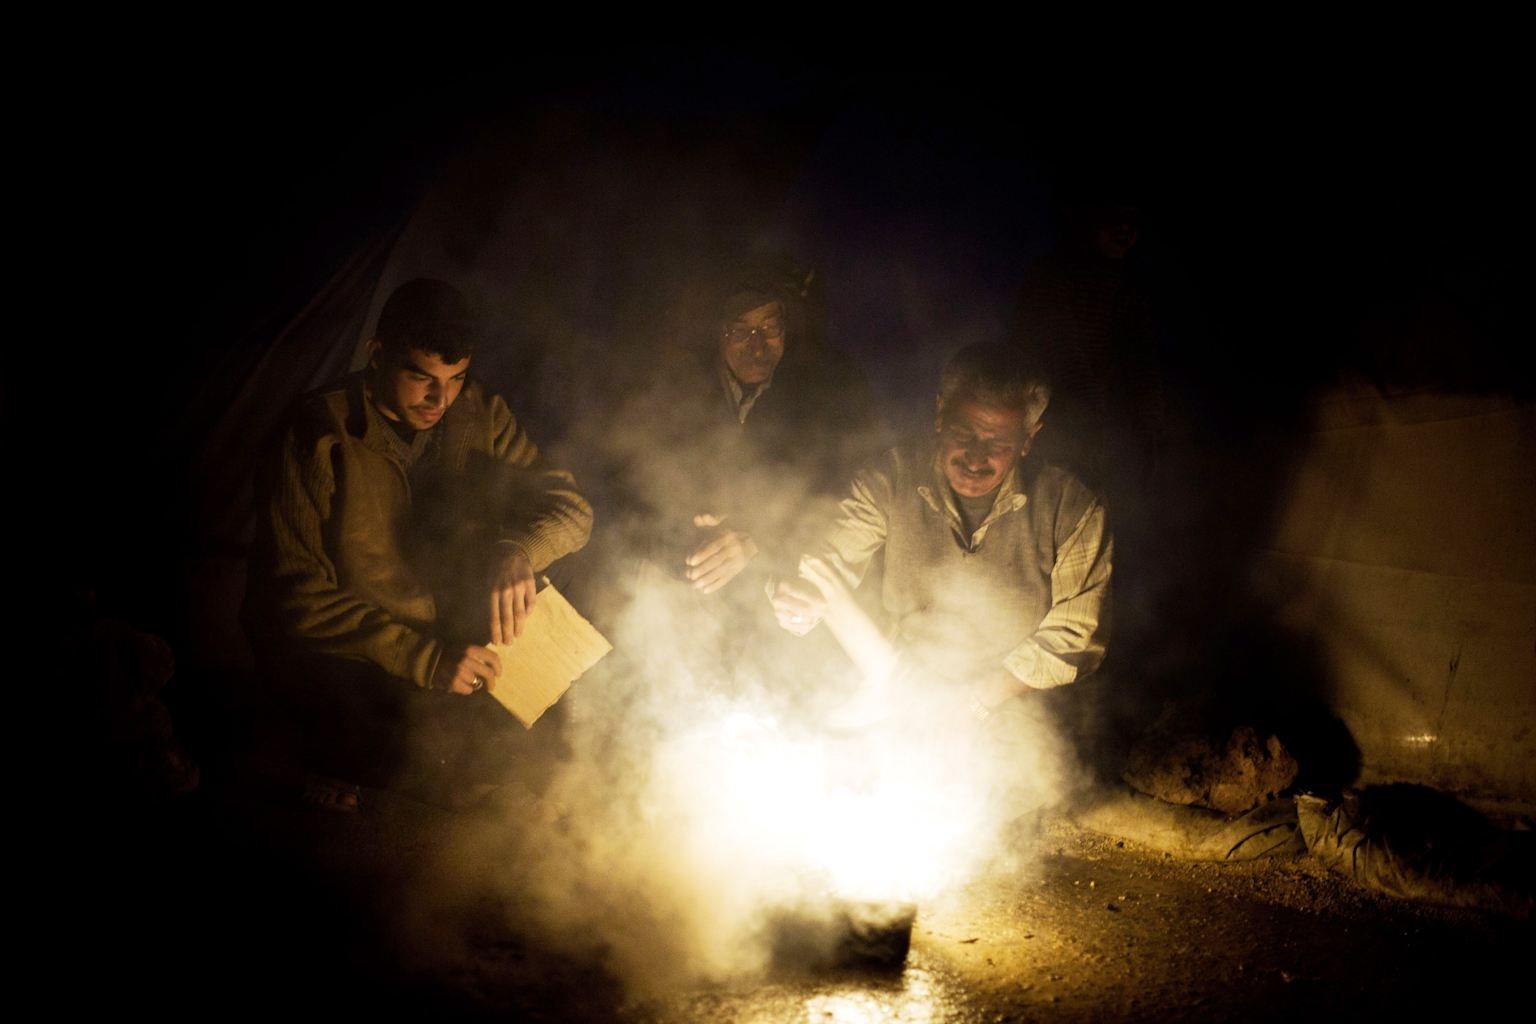 Syrian men heat a fire to boil water near their tent at a refugee camp near the Turkish border, in Azaz, Syria, Sunday, Dec. 9, 2012.